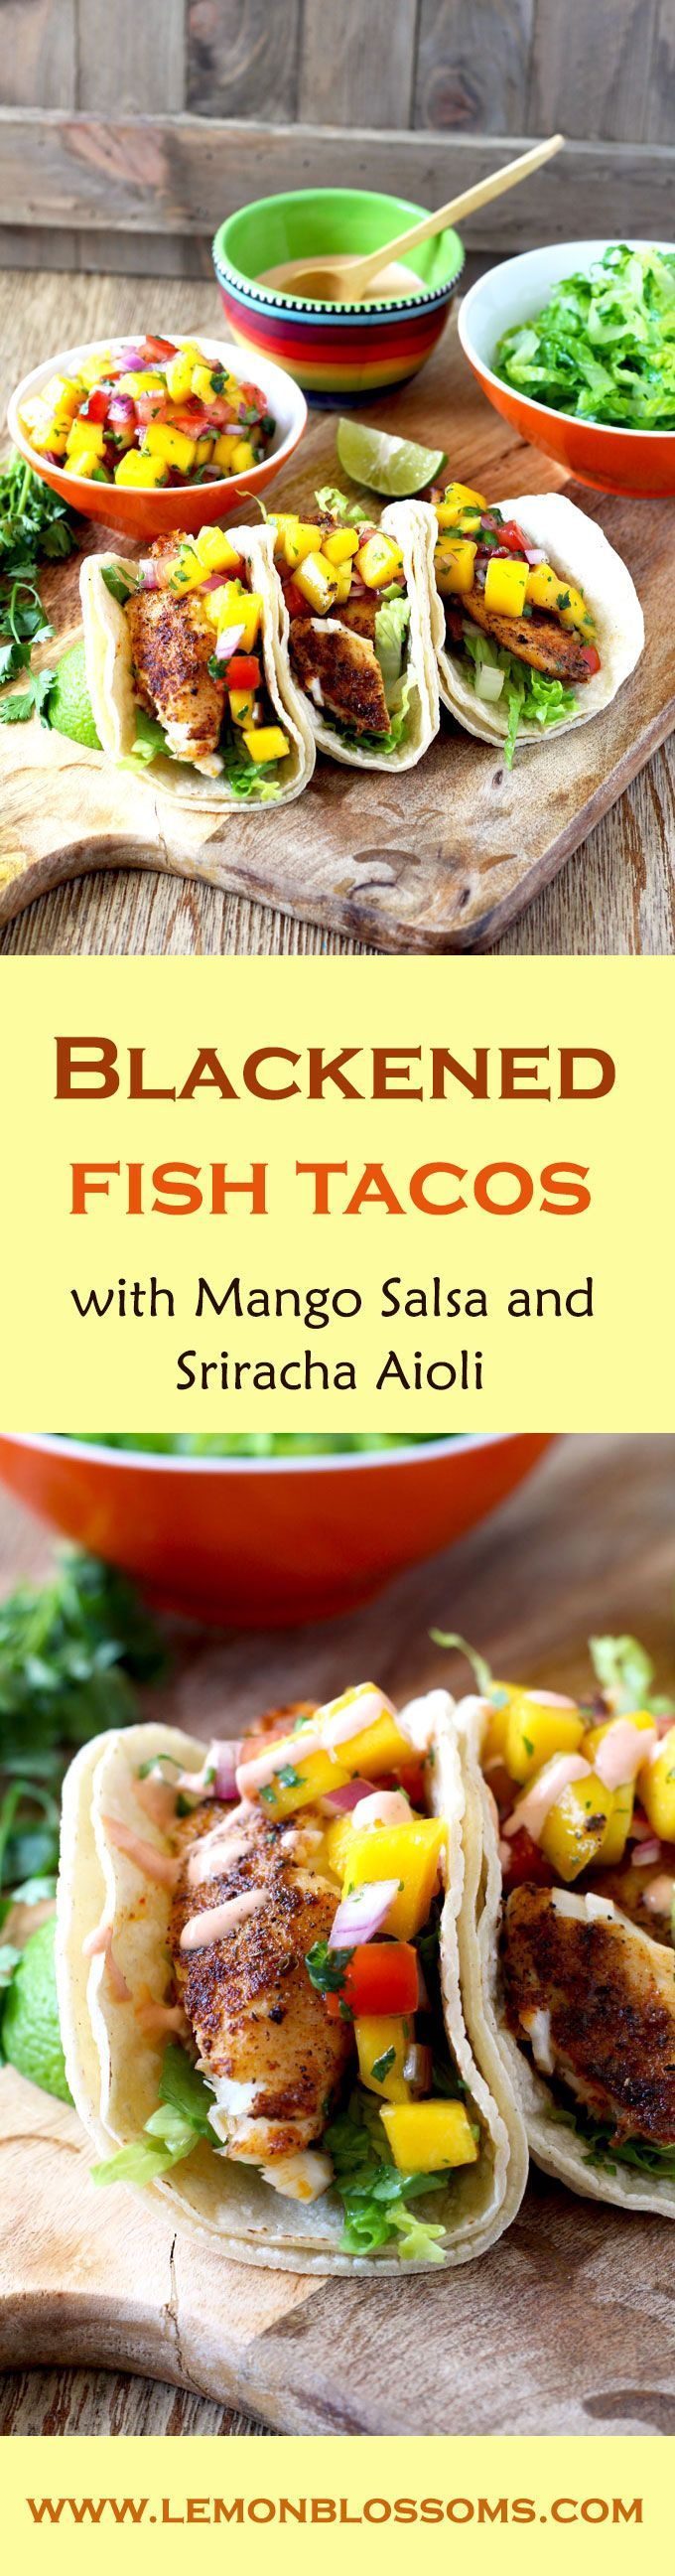 Full flavored, healthy and easy to make Blackened Fish Tacos with Mango Salsa and Sriracha Aioli. Fish fillets coated in a Cajun inspired spice mix served in warm tortillas and topped with a fresh and tasty mango salsa. Finish it up with a drizzle of creamy and spicy sriracha aioli for the best tacos ever!!! via @lmnblossoms